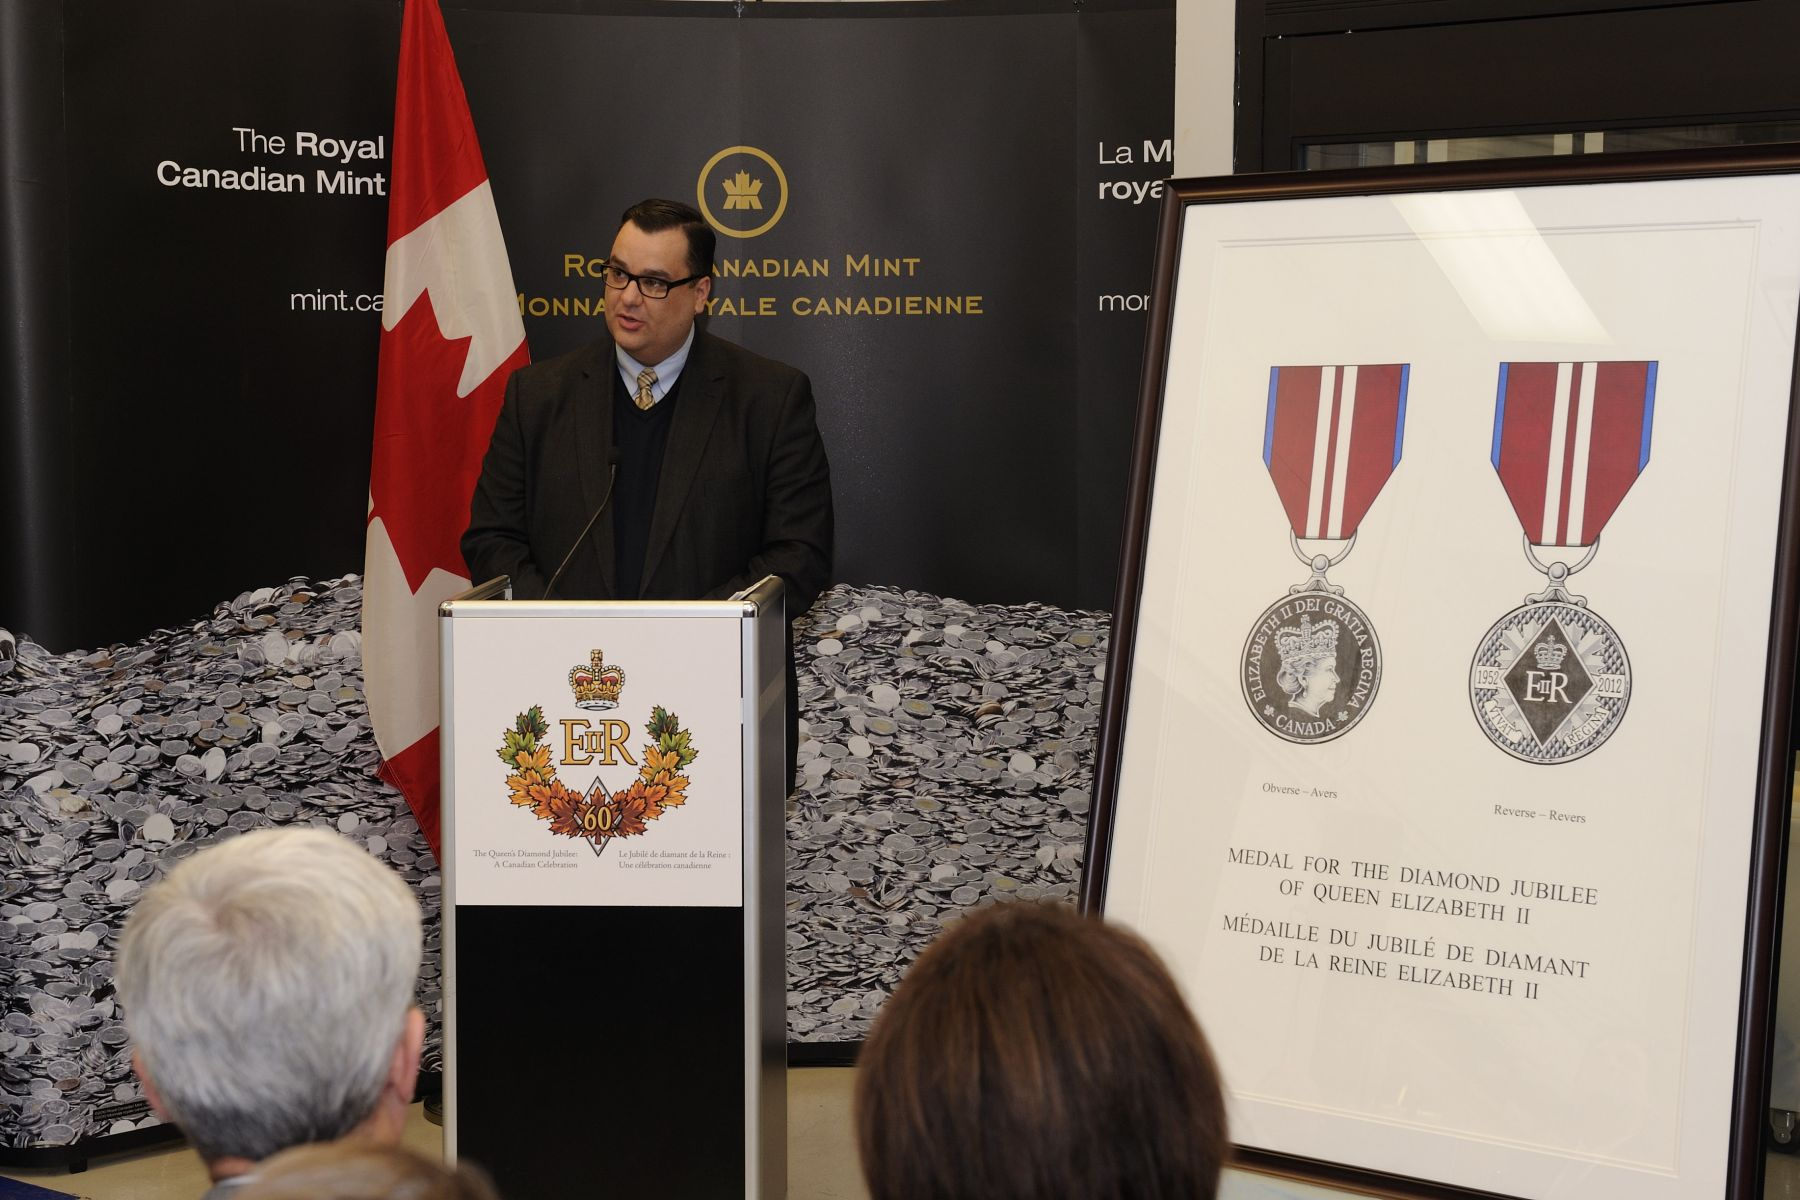 The Honourable James Moore, Minister of Canadian Heritage and Official Languages, announced Diamond Jubilee Program activities and initiatives for the upcoming celebrations in 2012.